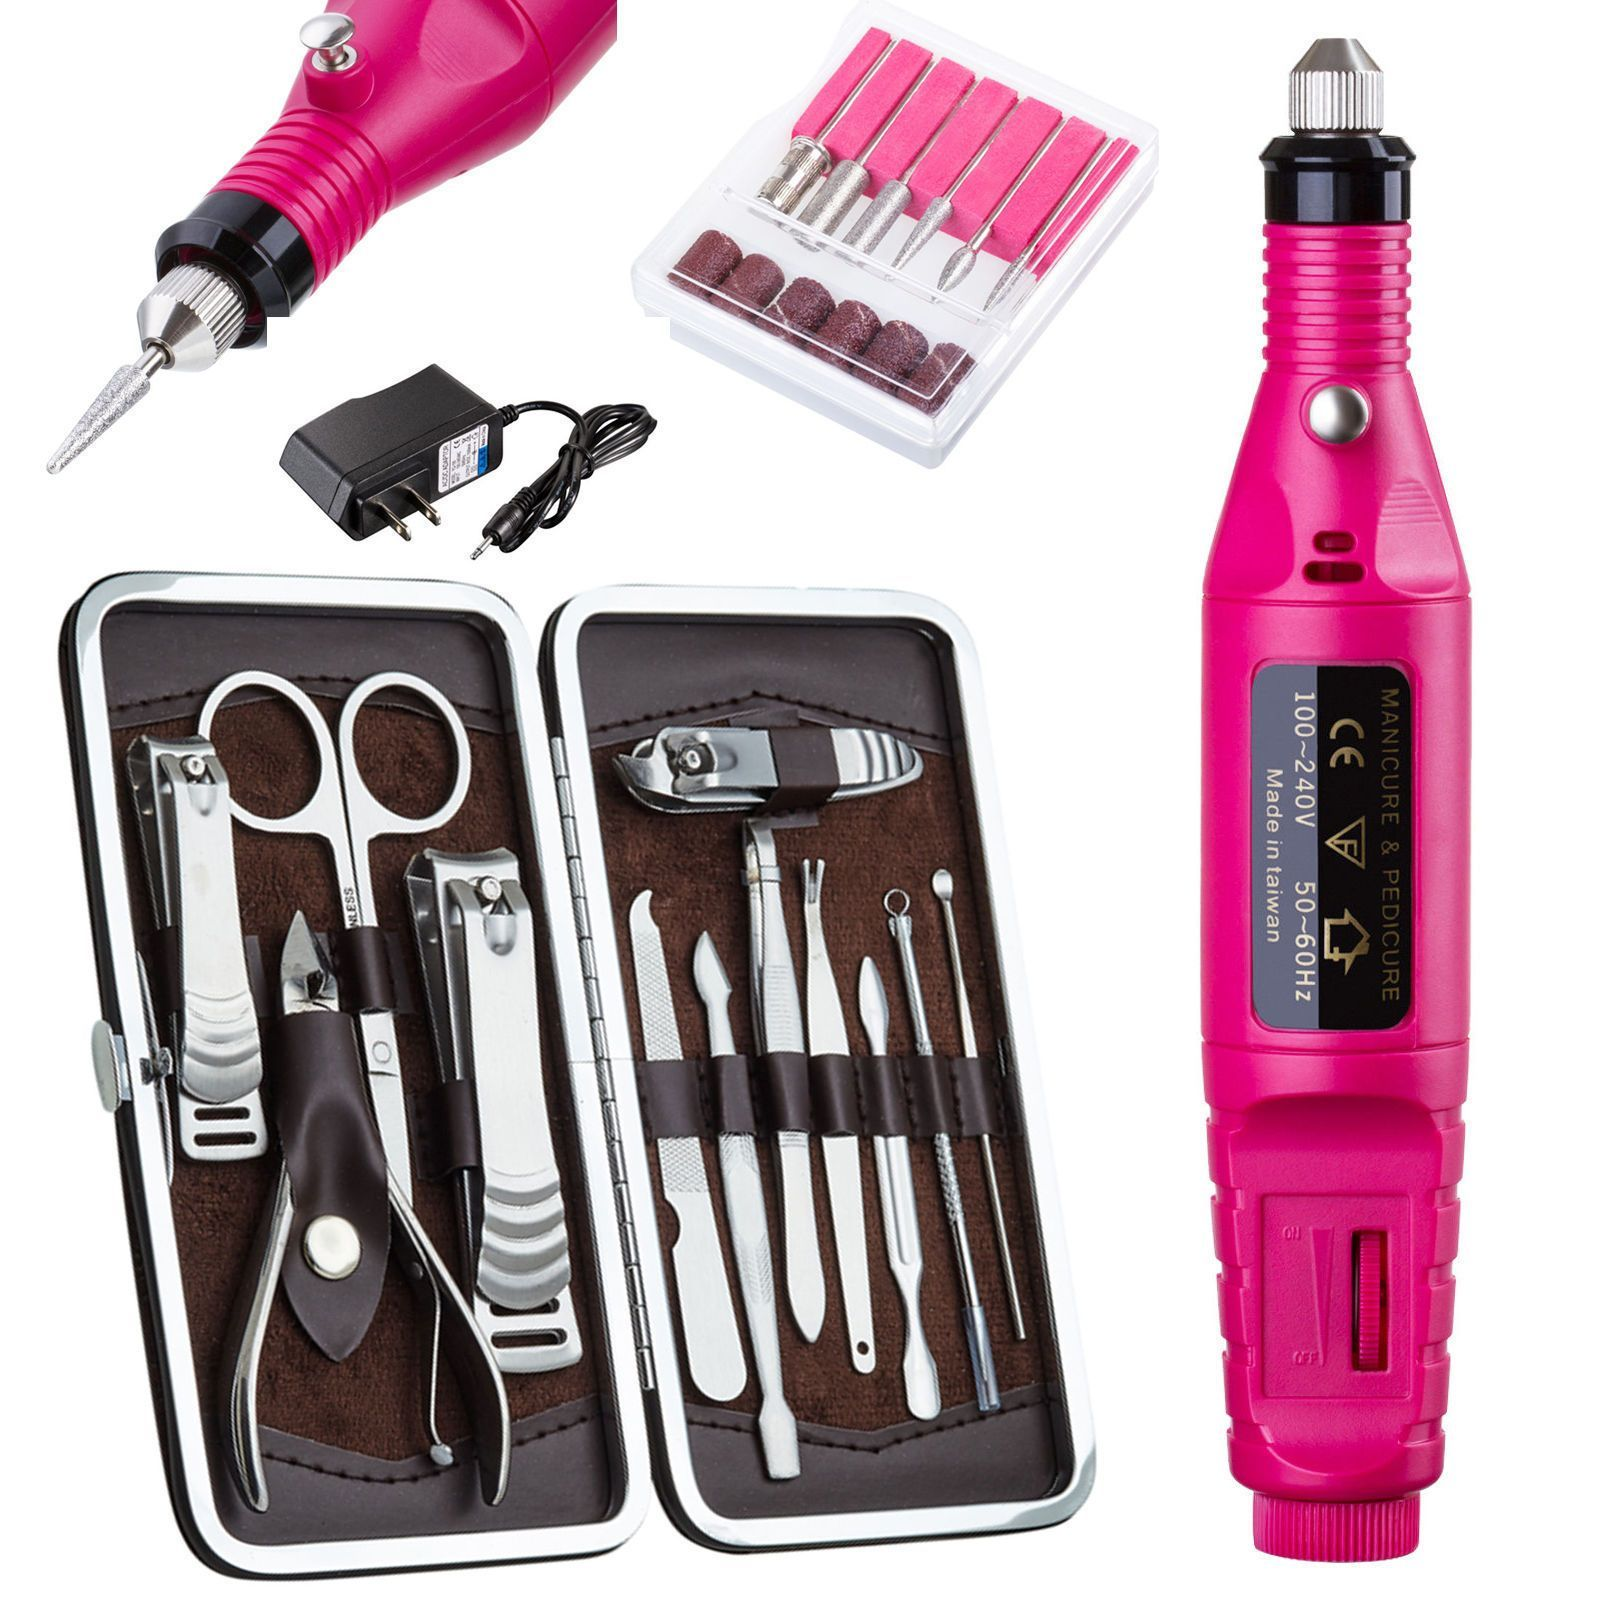 Professional Electric Nail Drill, 12-in-1 Nail File Manicure ...